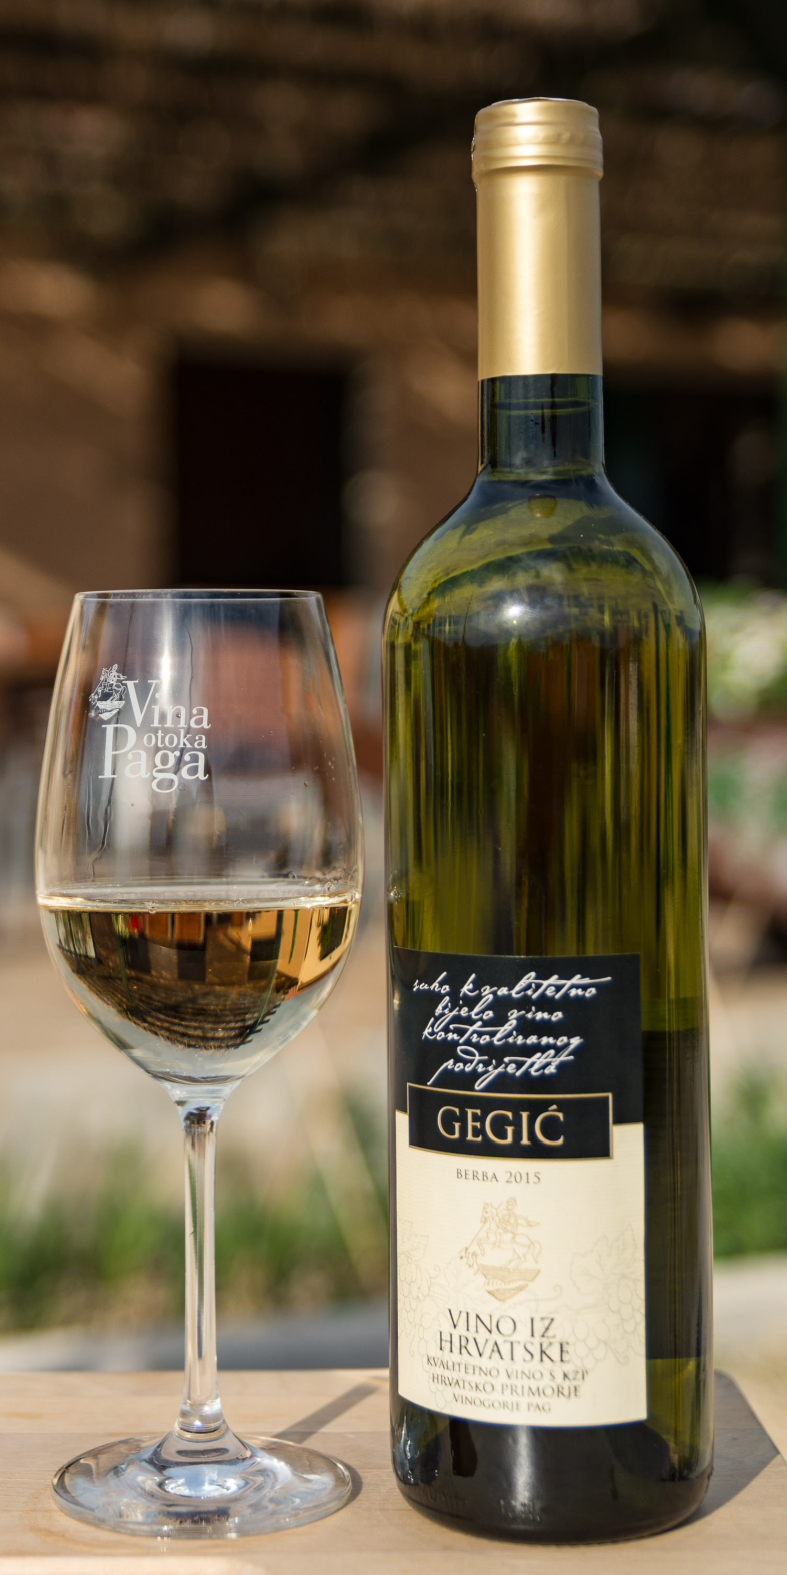 GEGIĆ - Wines of the Island of Pag